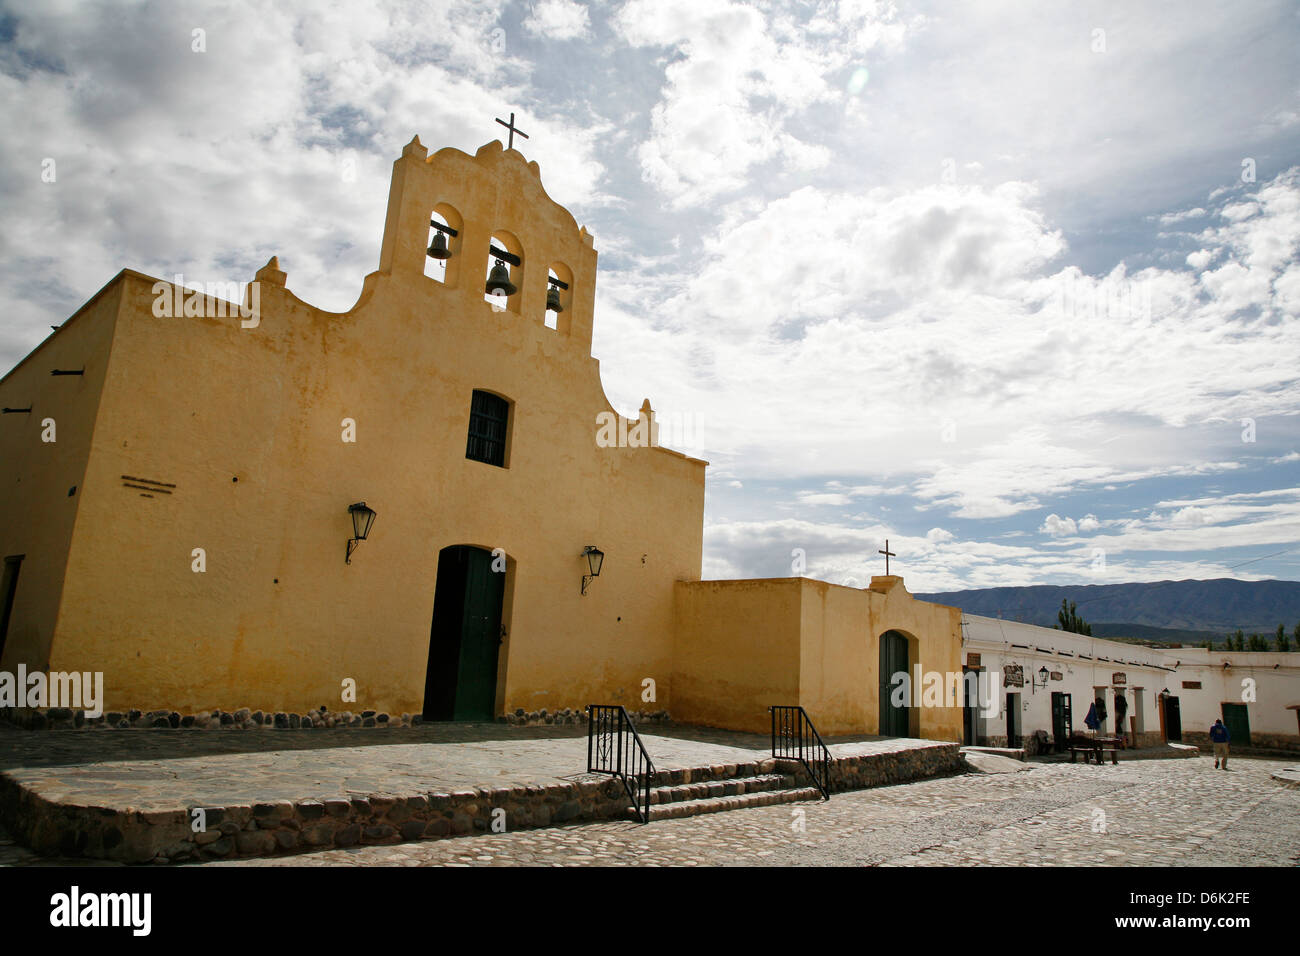 San Jose de Cachi church located at the main square in Cachi, Salta Province, Argentina, South America - Stock Image